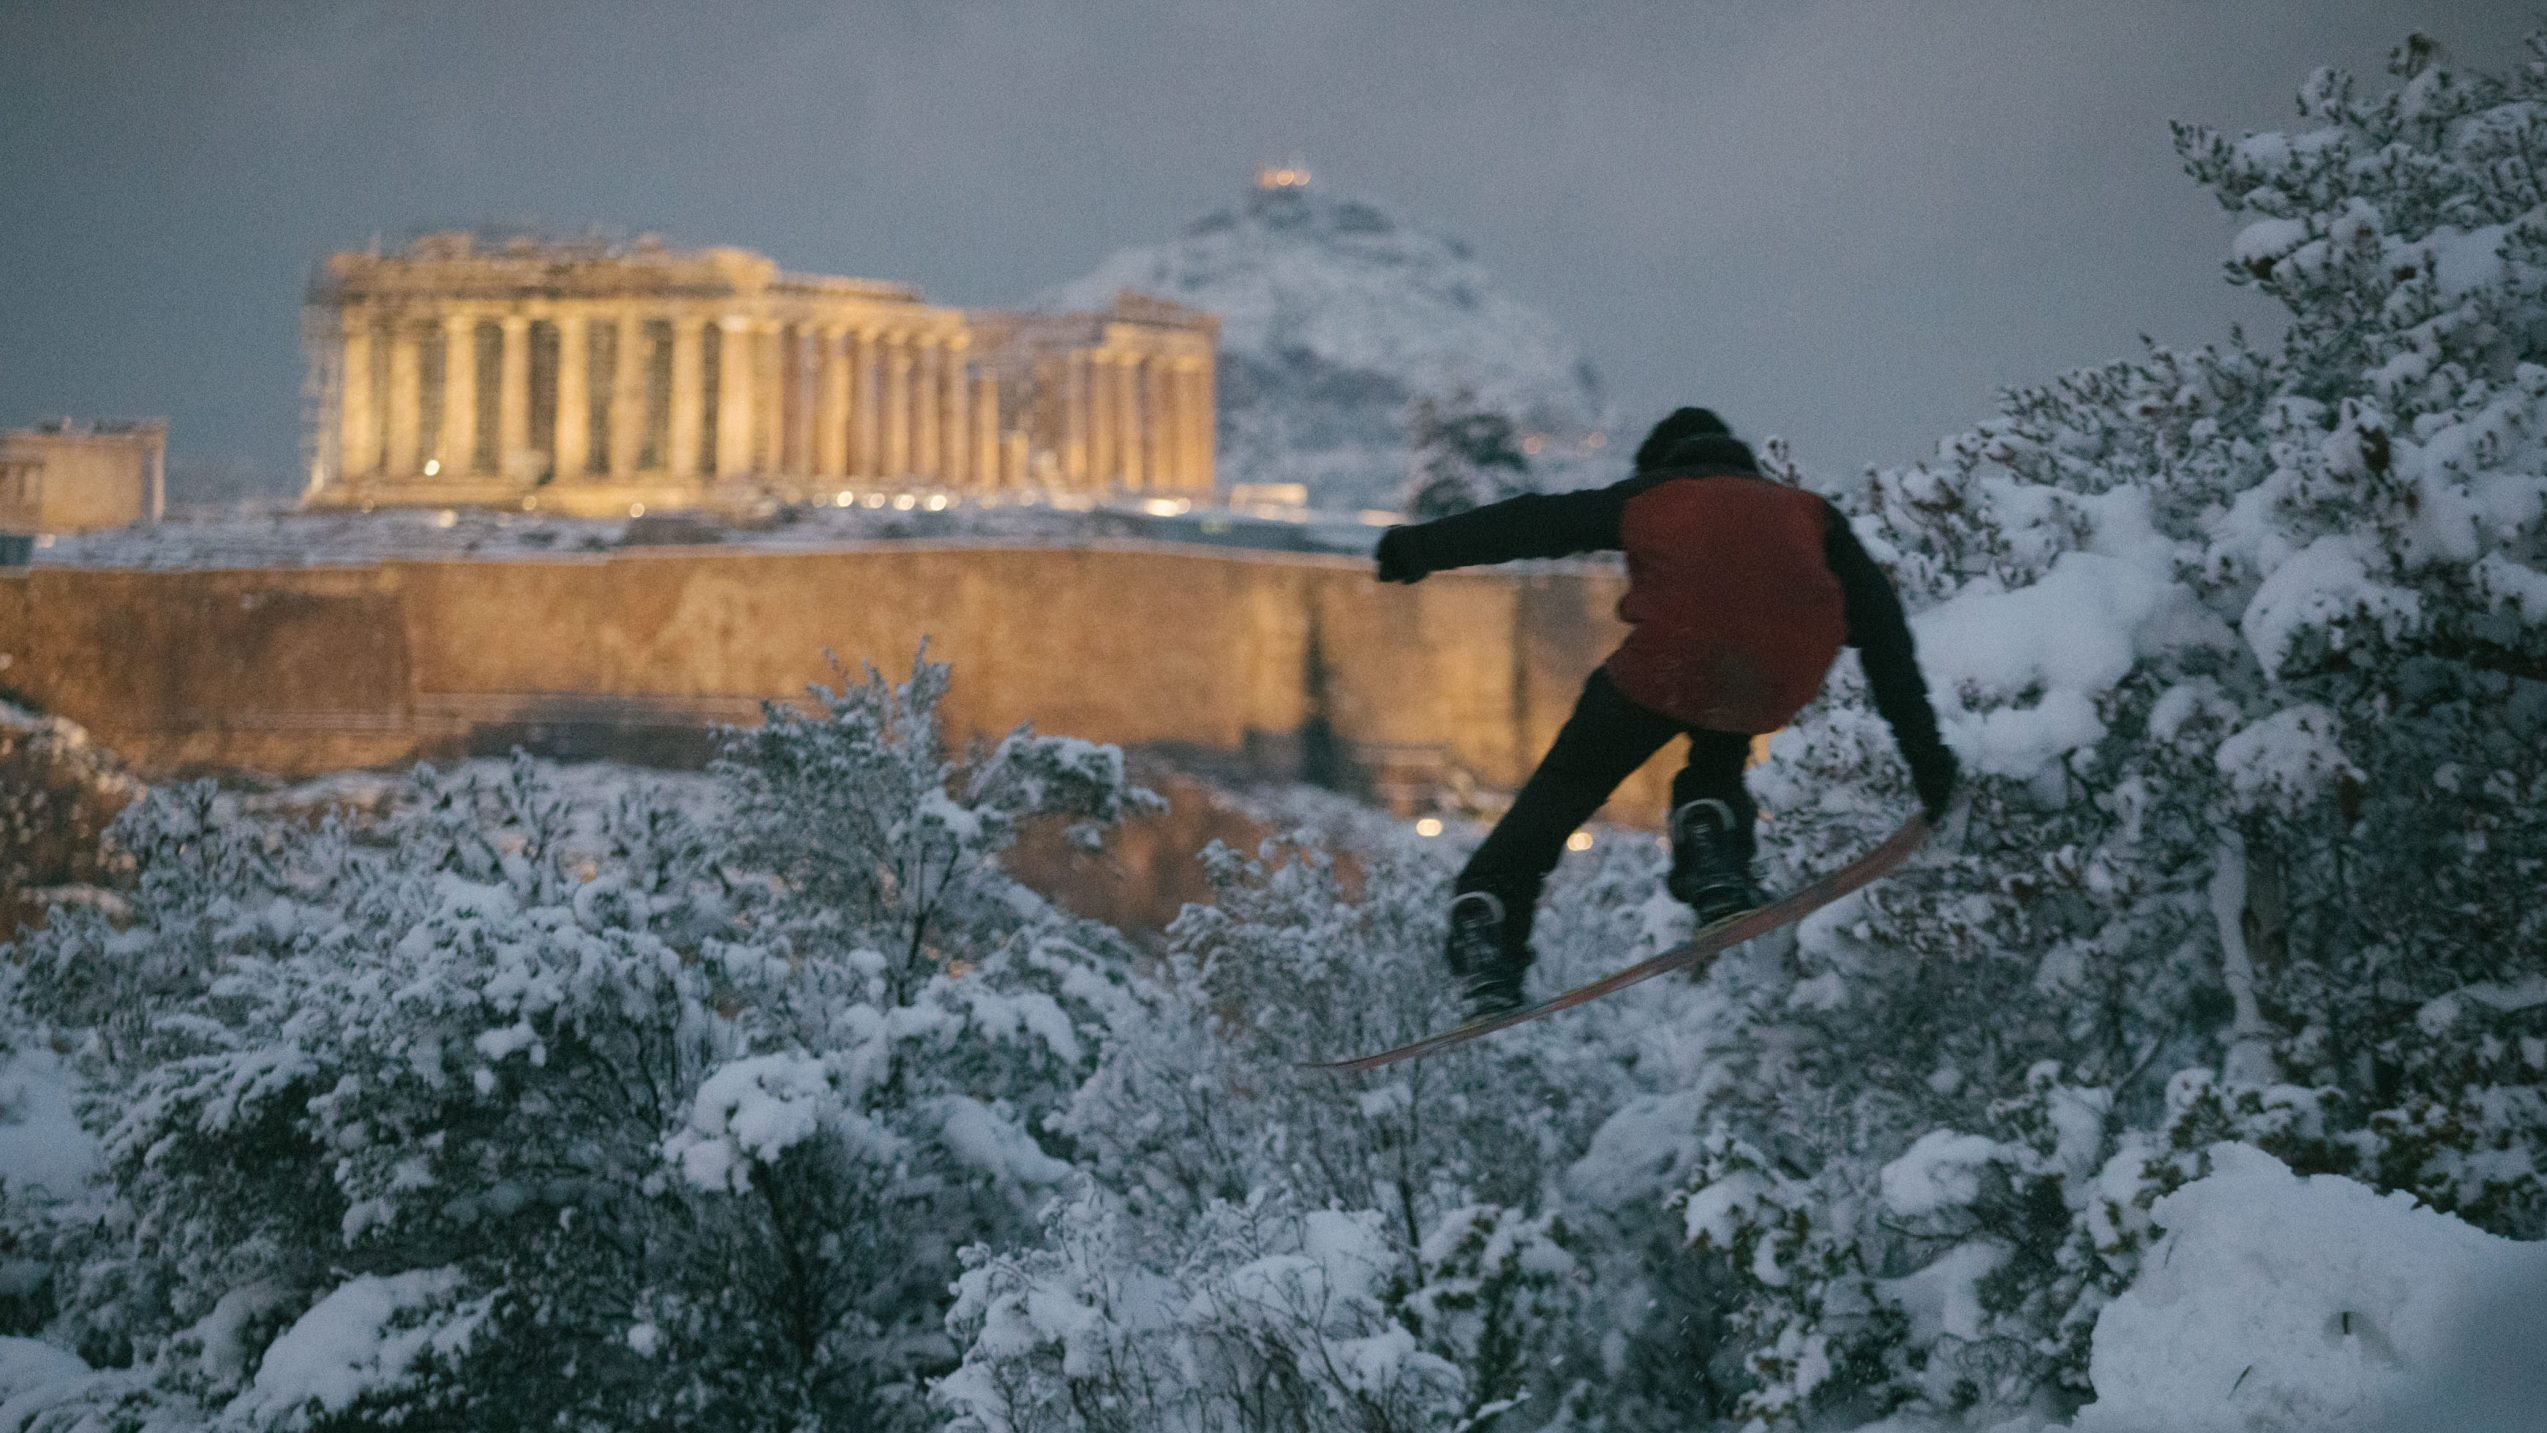 Snowboarding the Parthenon